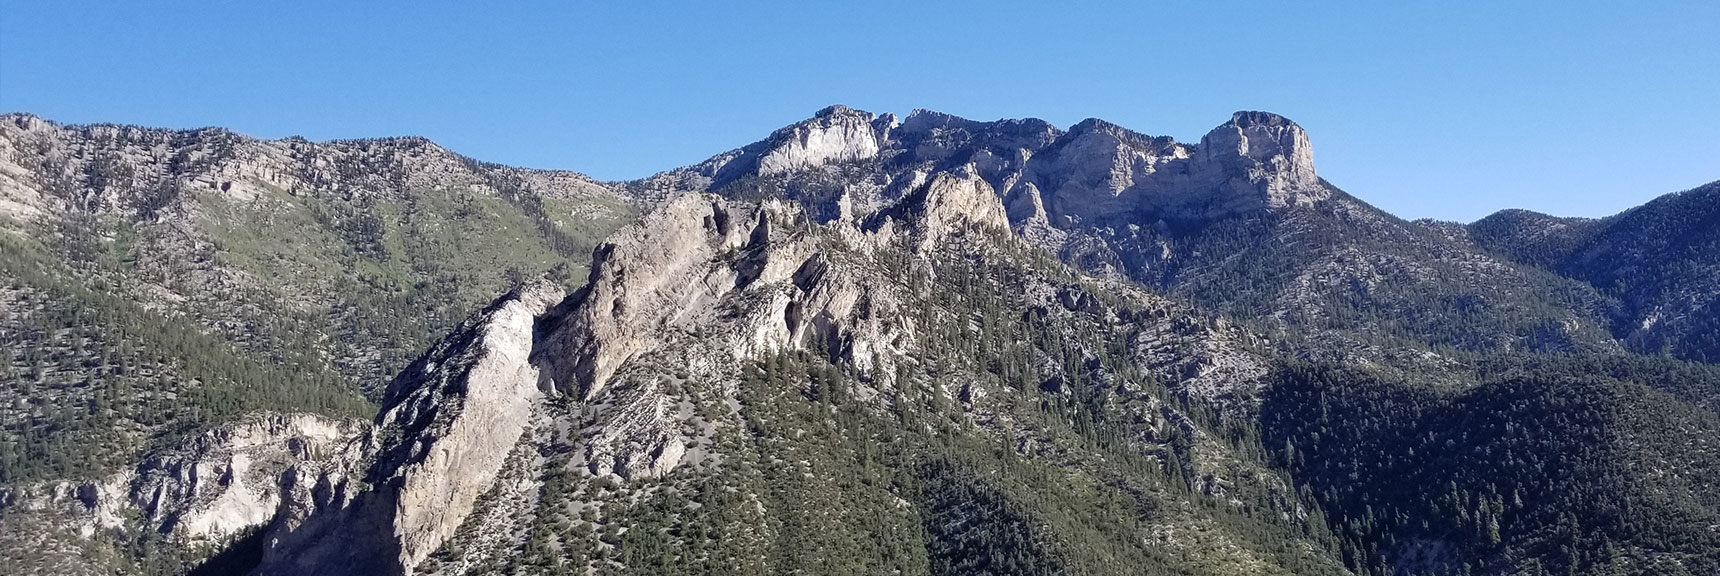 Cockscomb Peak and Ridge Viewed from Cathedral Rock Summit in Mt. Charleston Wilderness, Nevada